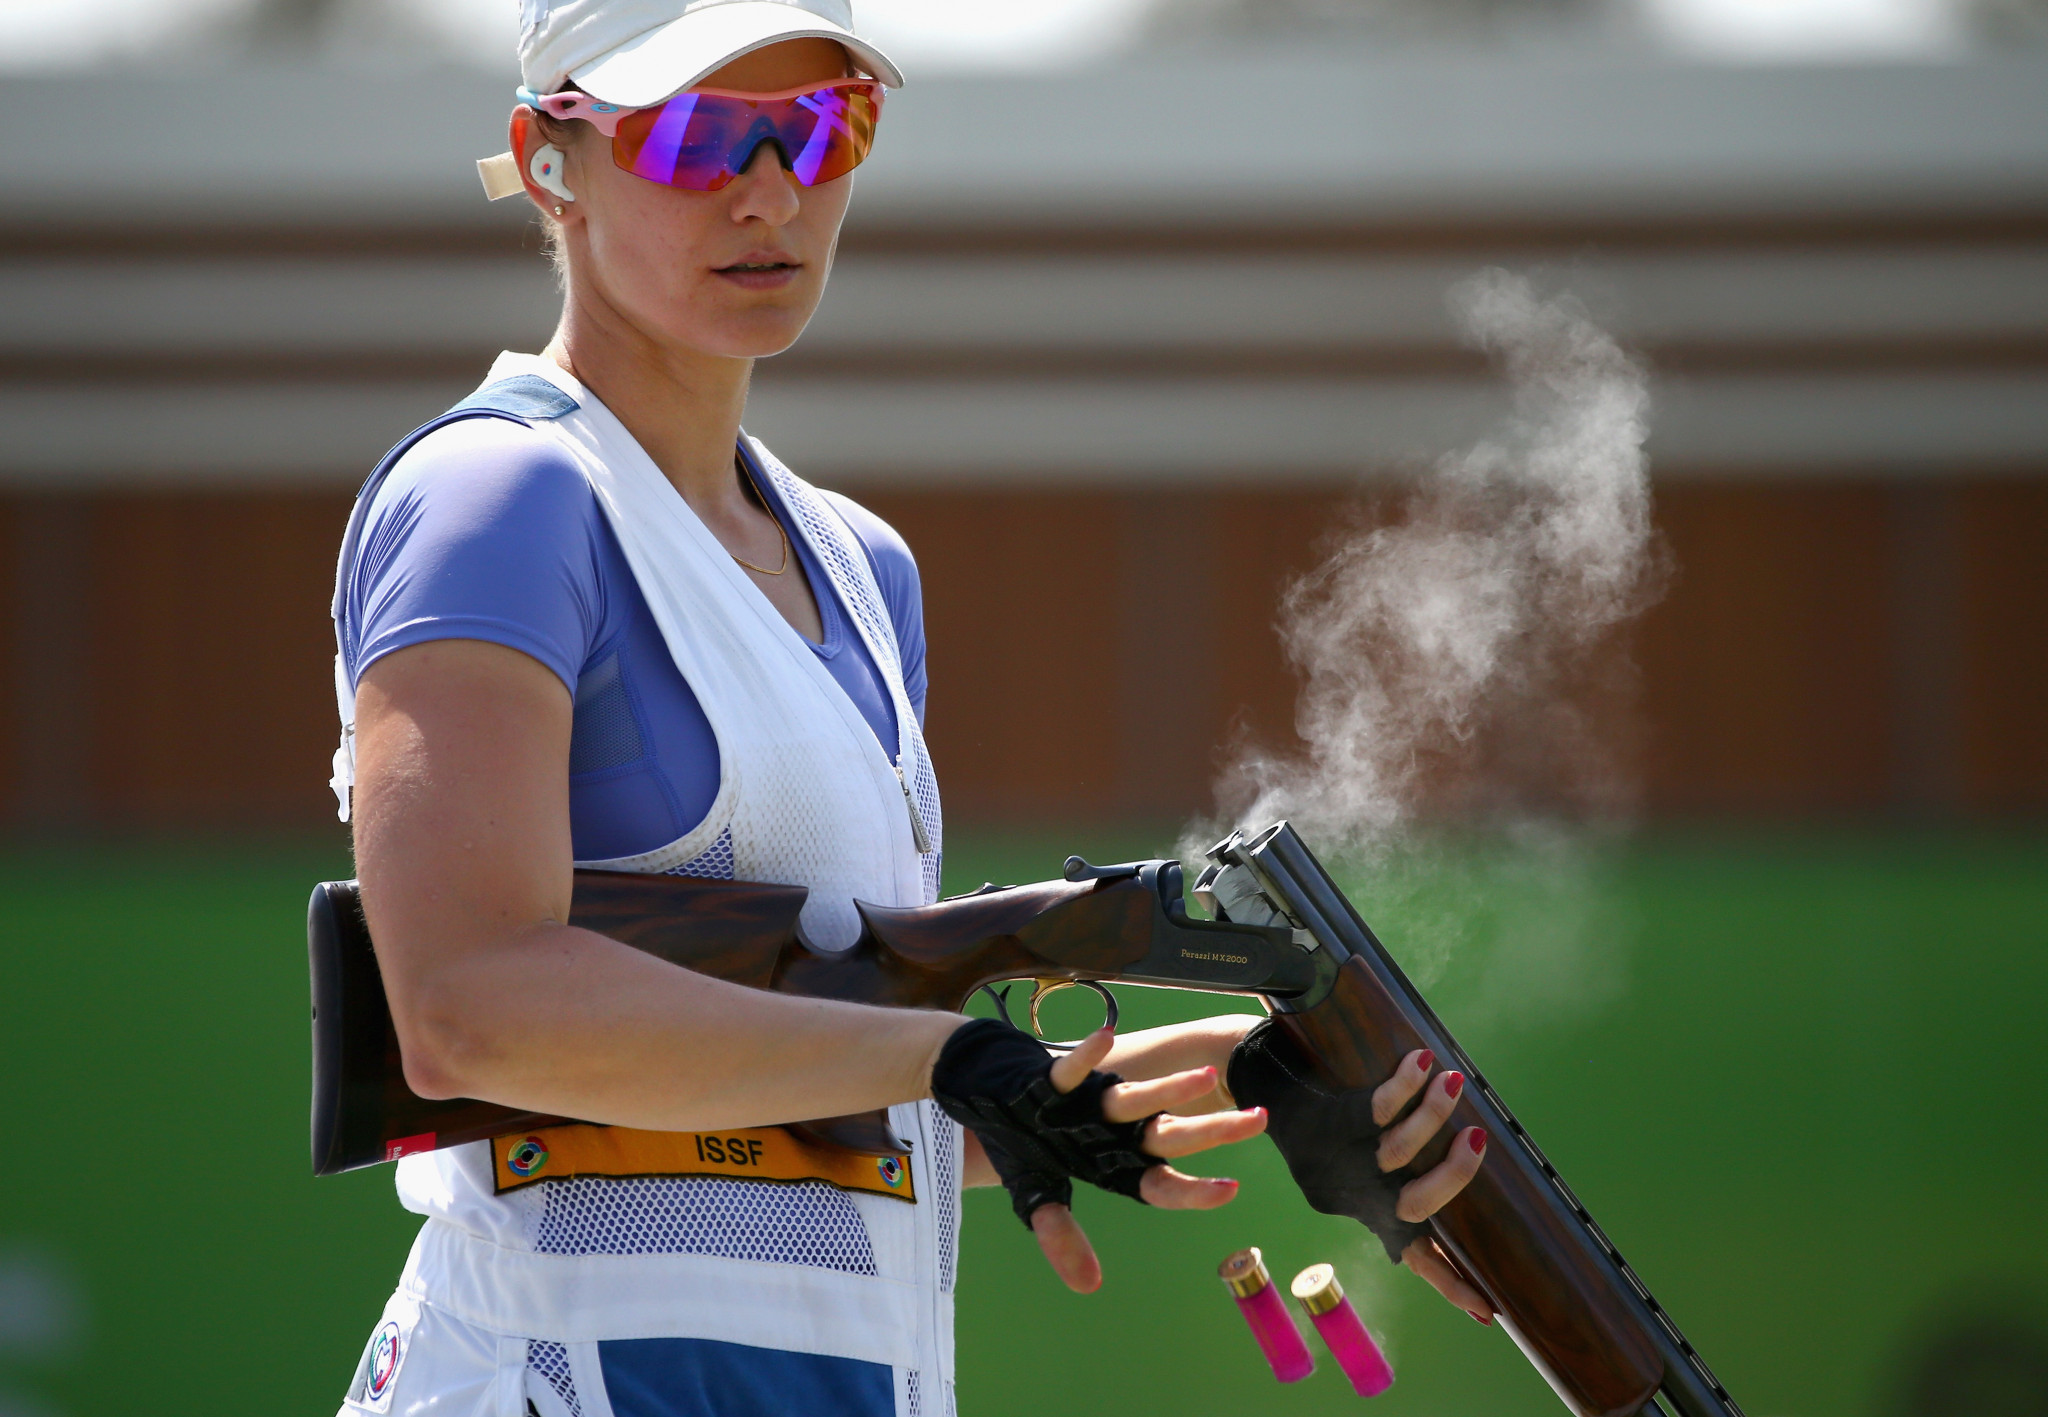 Danka Barteková of Slovakia will be standing for re-election to the IOC Athletes' Commission at next year's Olympic Games in Tokyo ©Getty Images